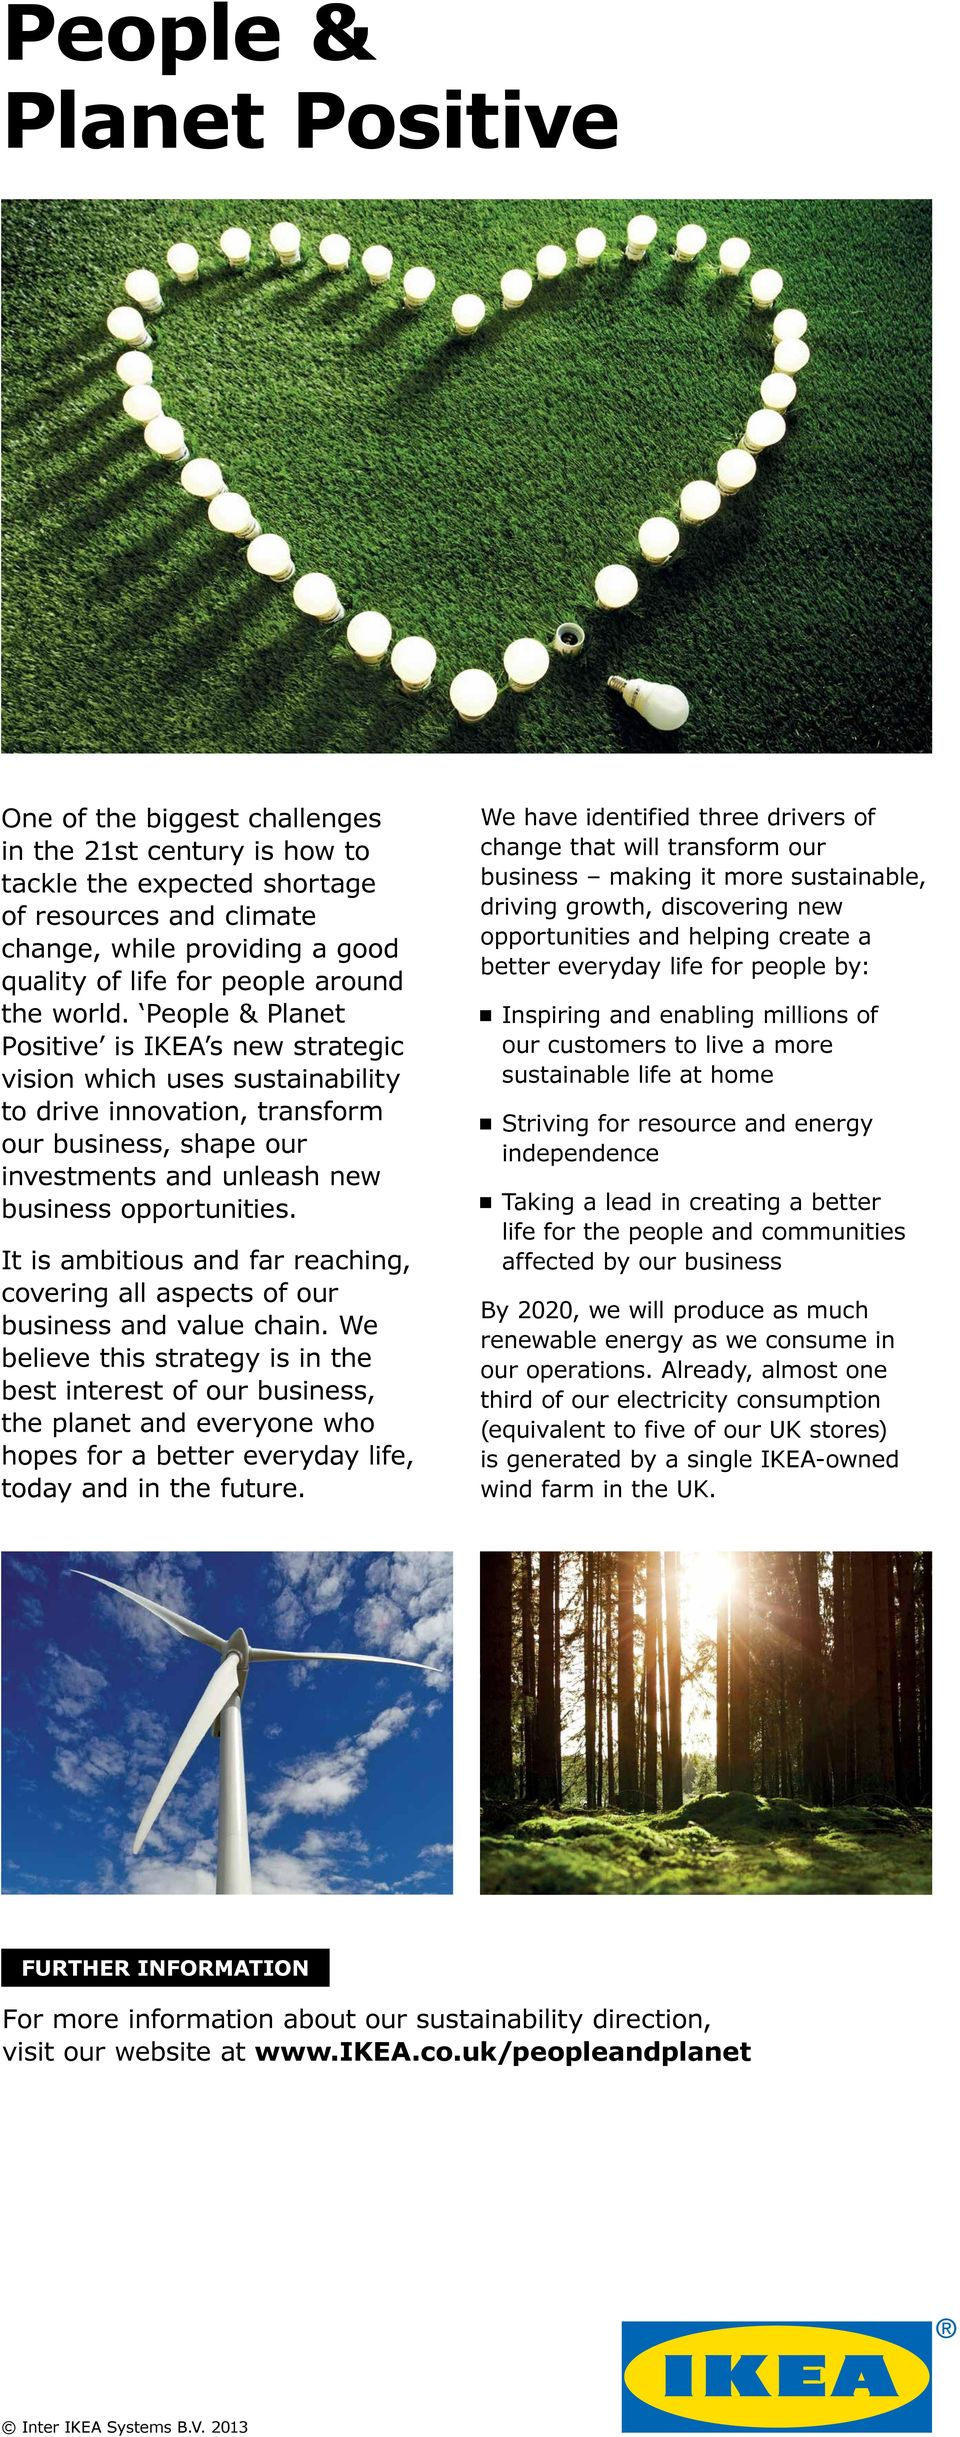 People & Planet Positive is IKEA s new strategic vision which uses sustainability to drive innovation, transform our business, shape our investments and unleash new business opportunities.